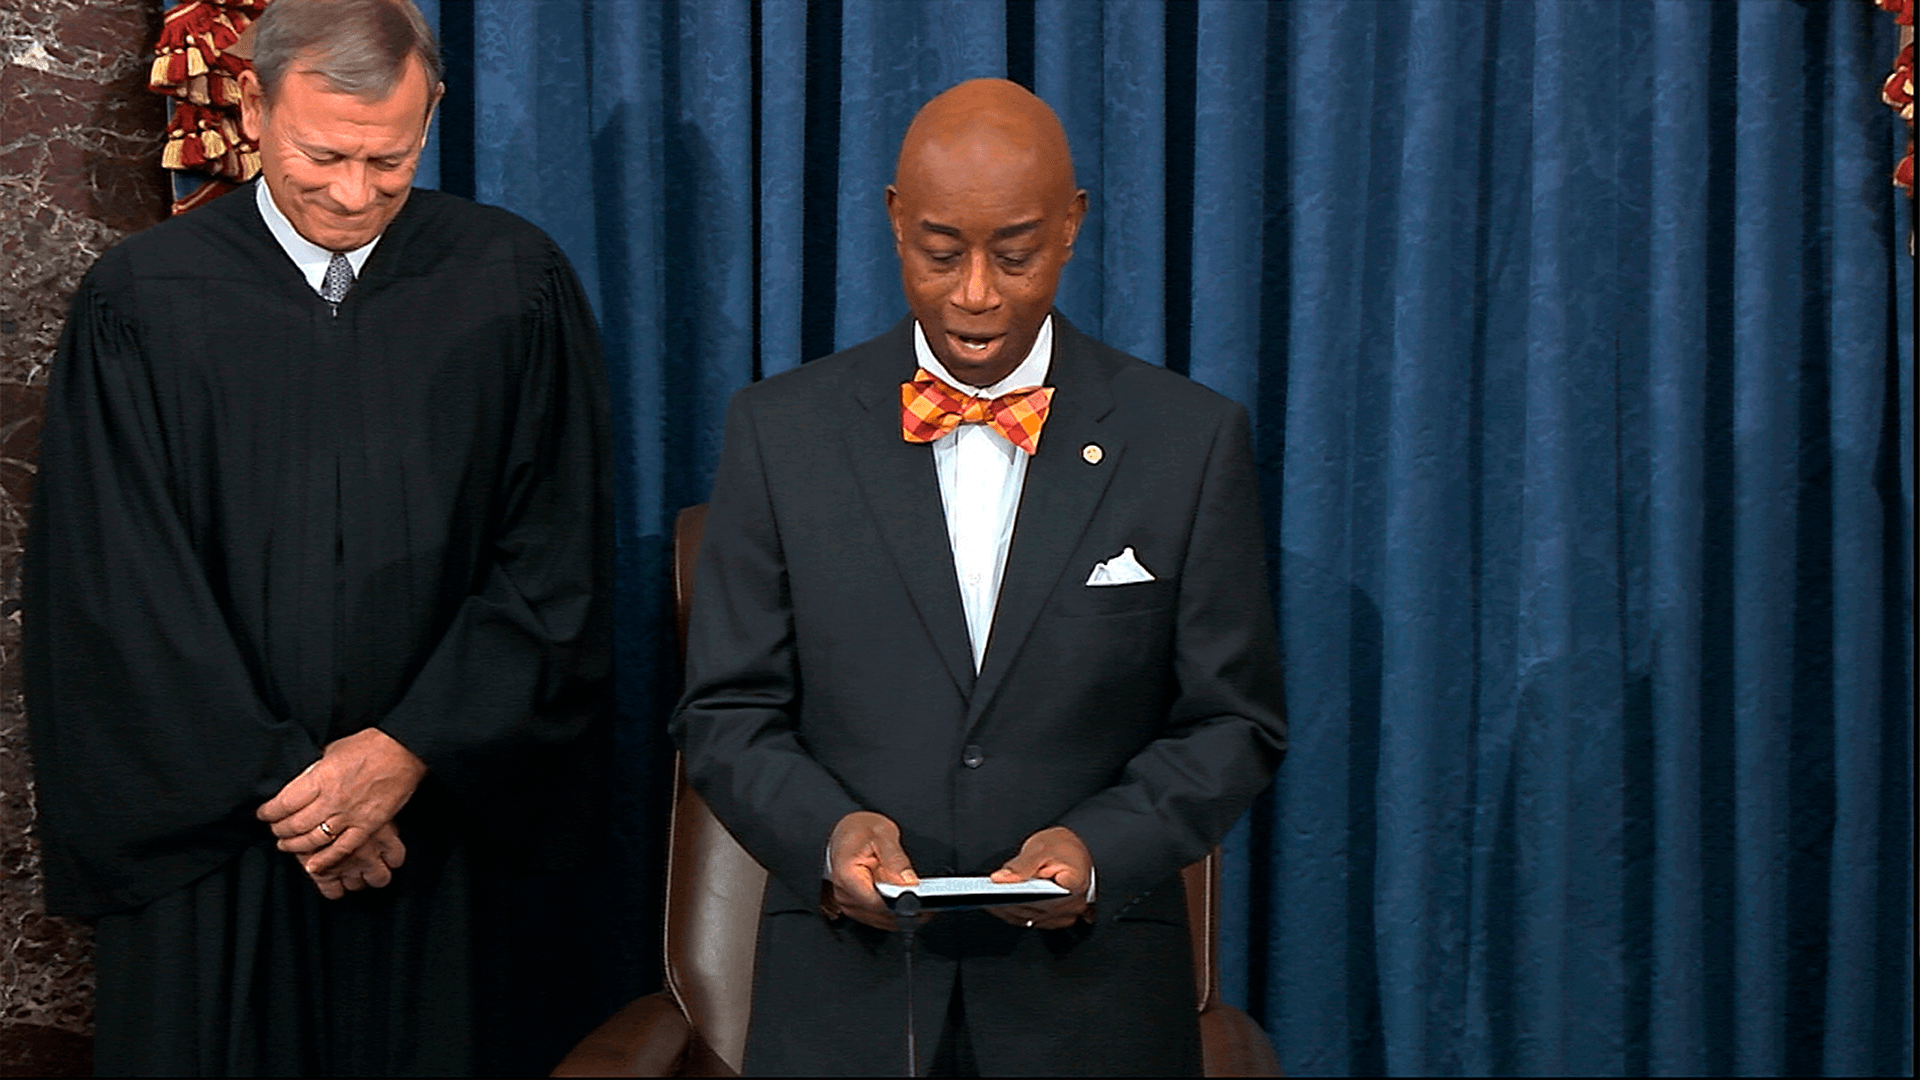 Chaplain prays for Kobe Bryant and crash victims at Monday's impeachment hearing